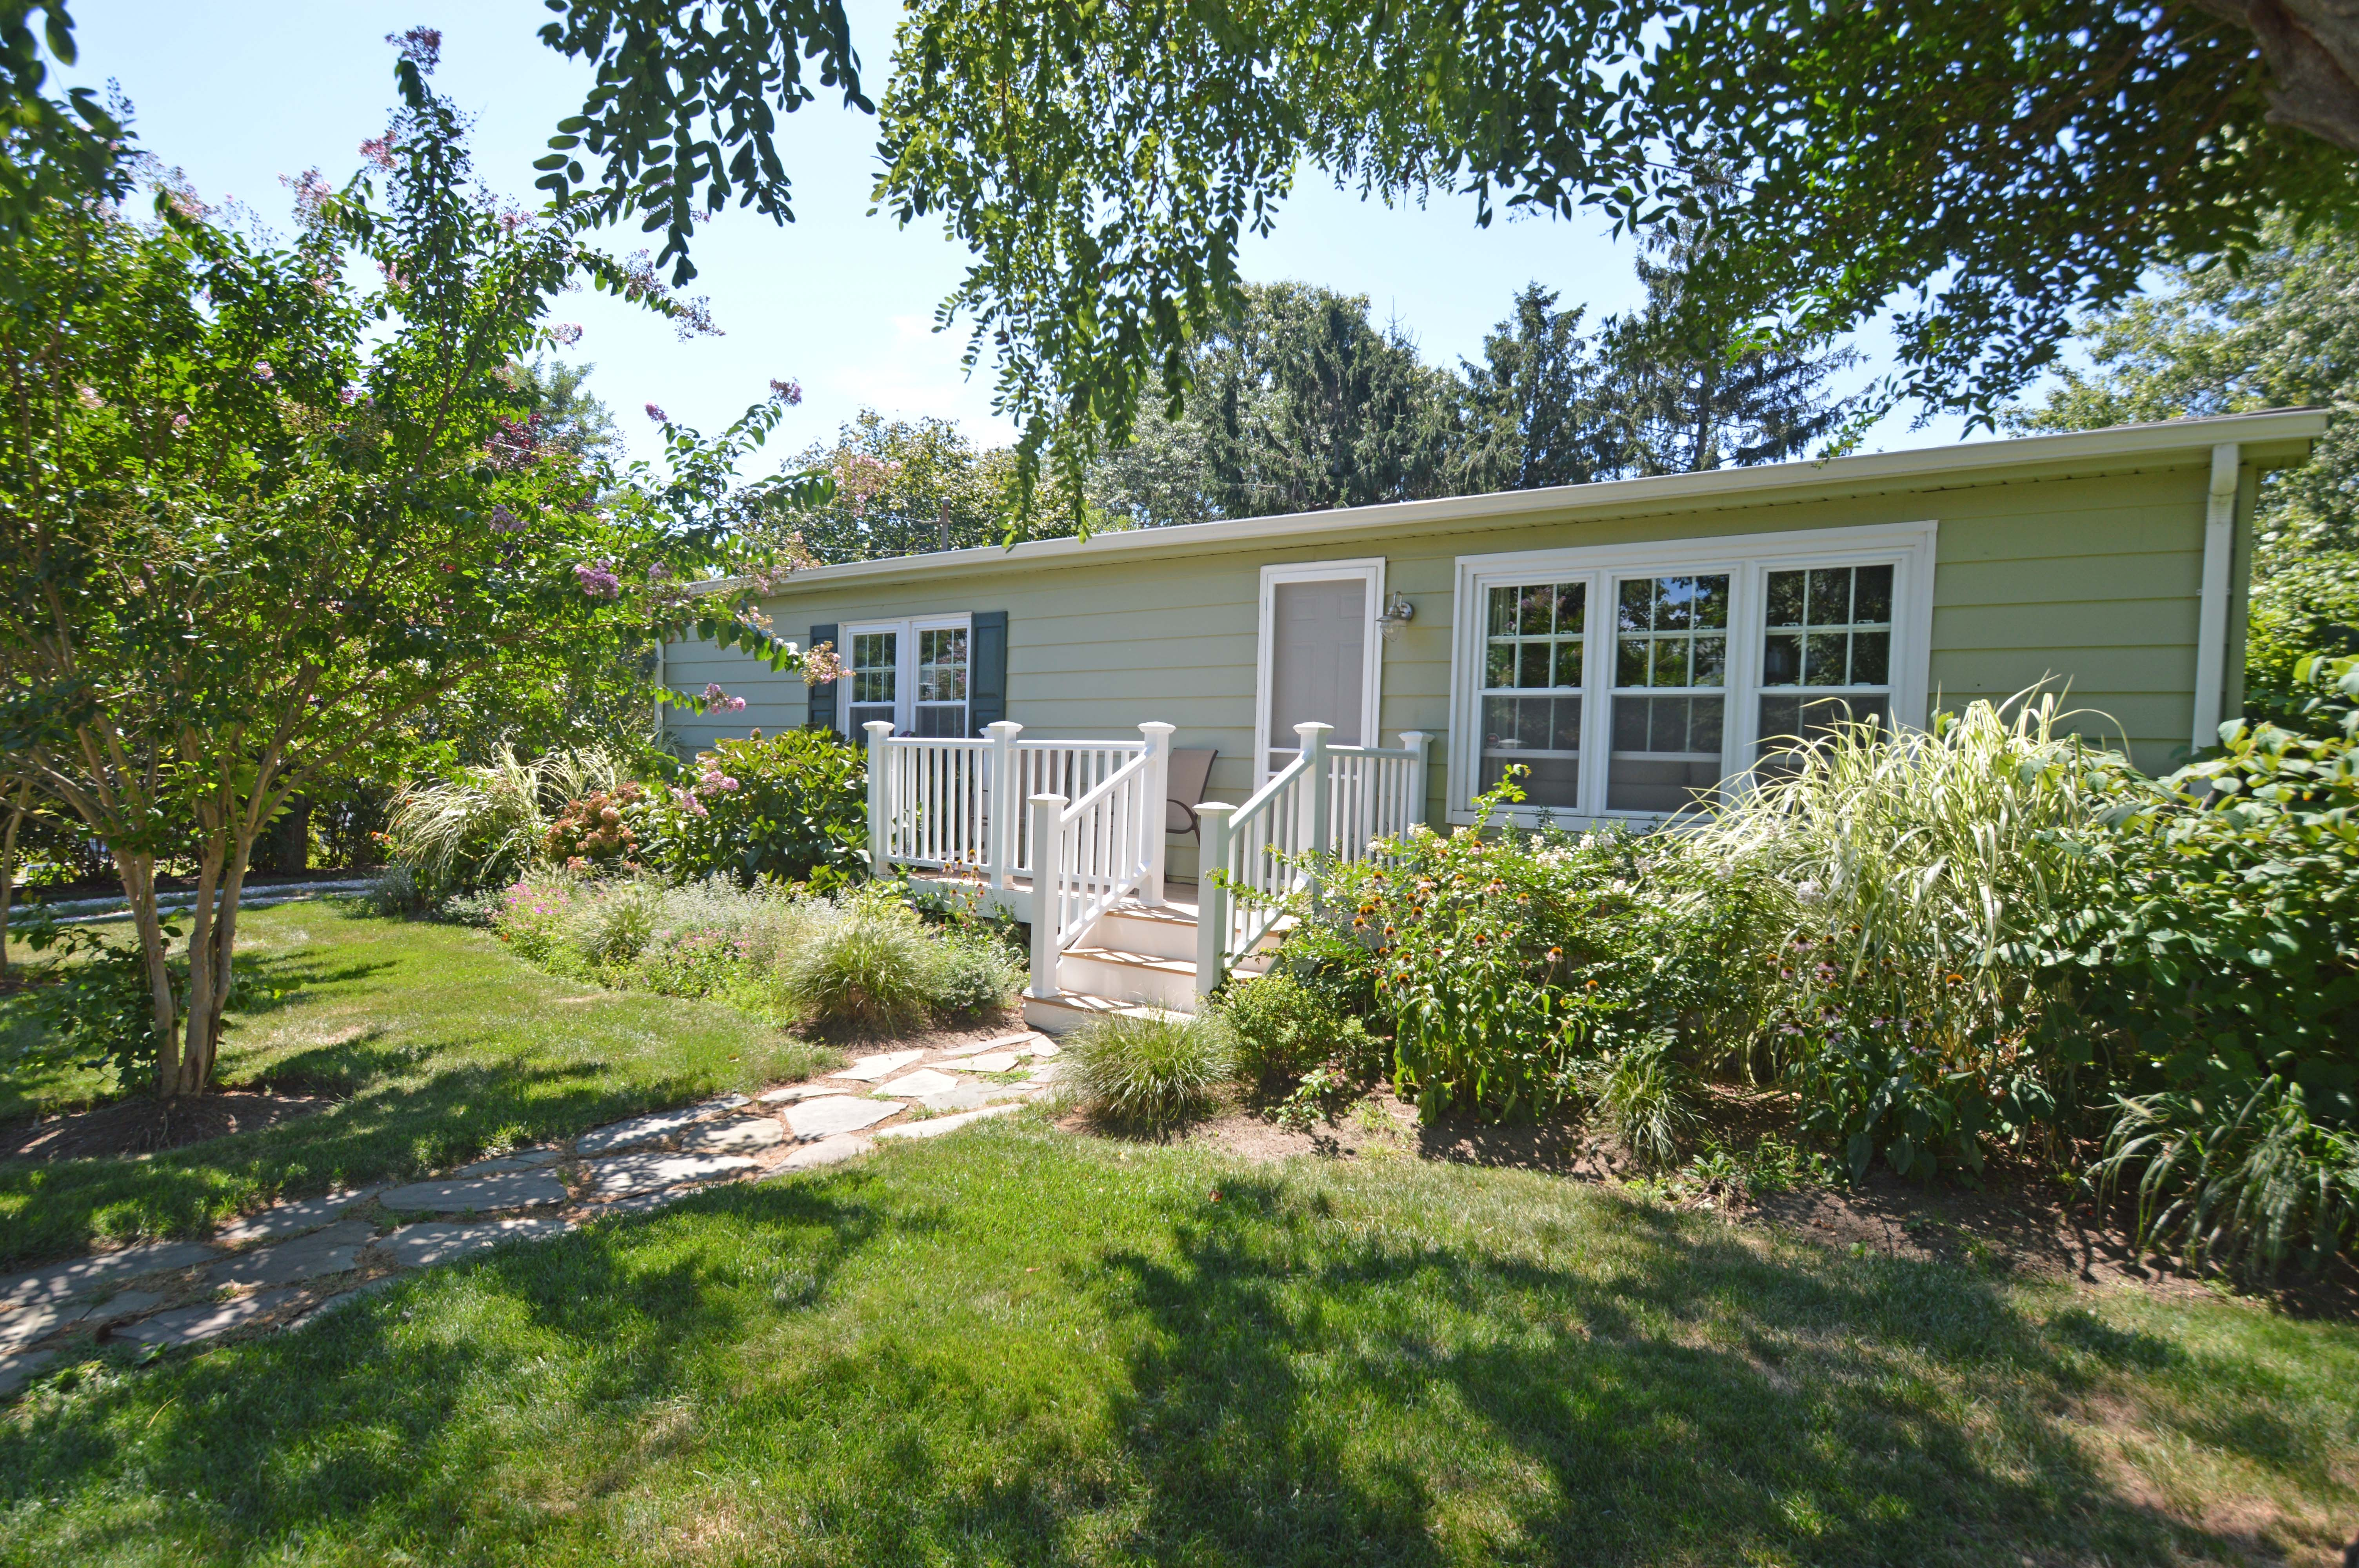 Single Family Home for Sale at Ranch 215 Bridge St Greenport, New York 11944 United States